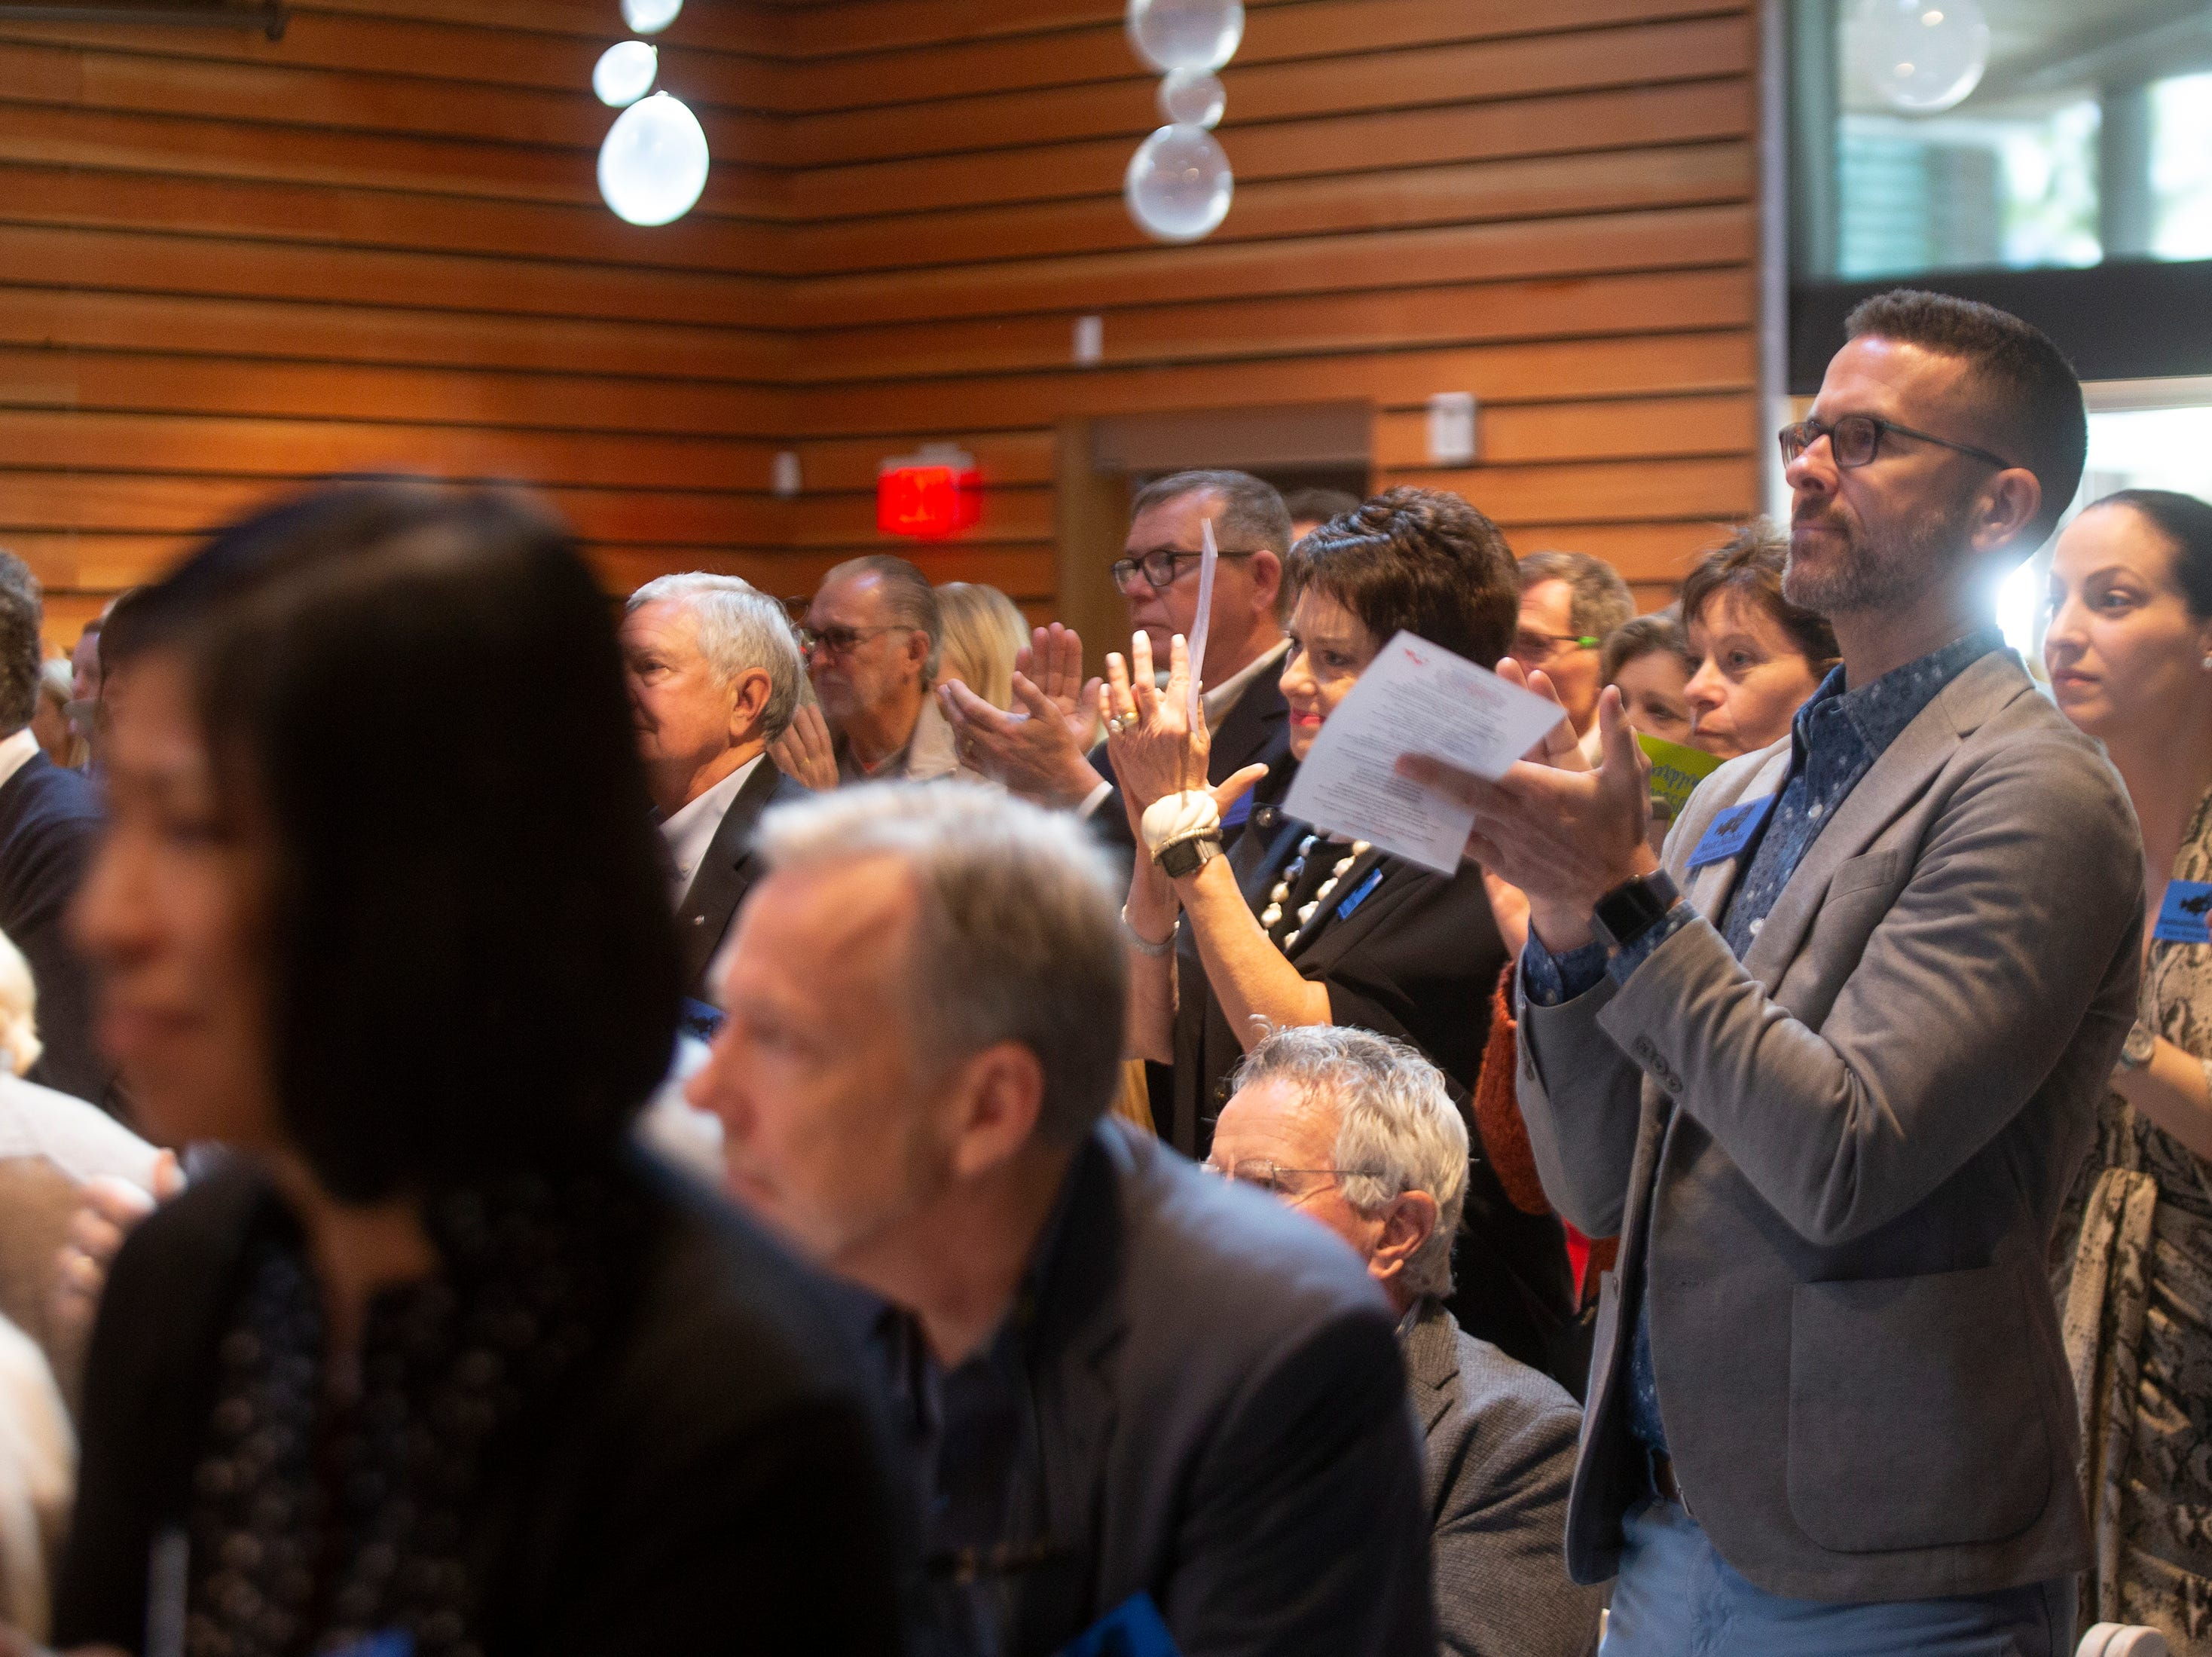 Patrons applaud as presenters talk during the Naples Winter Wine Festival Meet the Kids Day program Friday, Jan. 25, 2019, at Naples Botanical Garden.